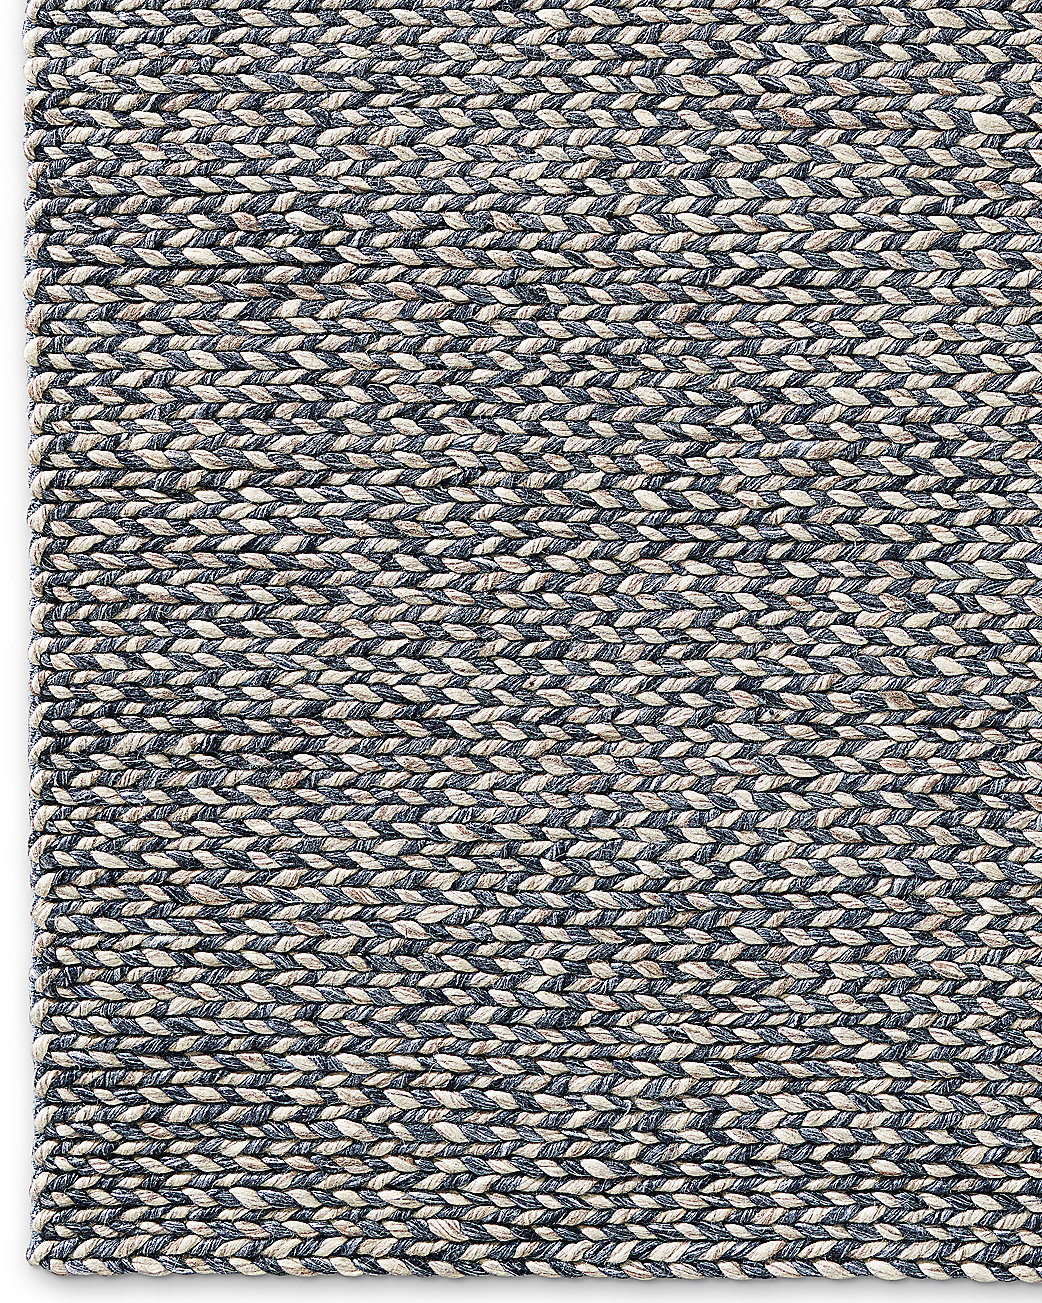 Chunky Braided Twist Rug - Charcoal